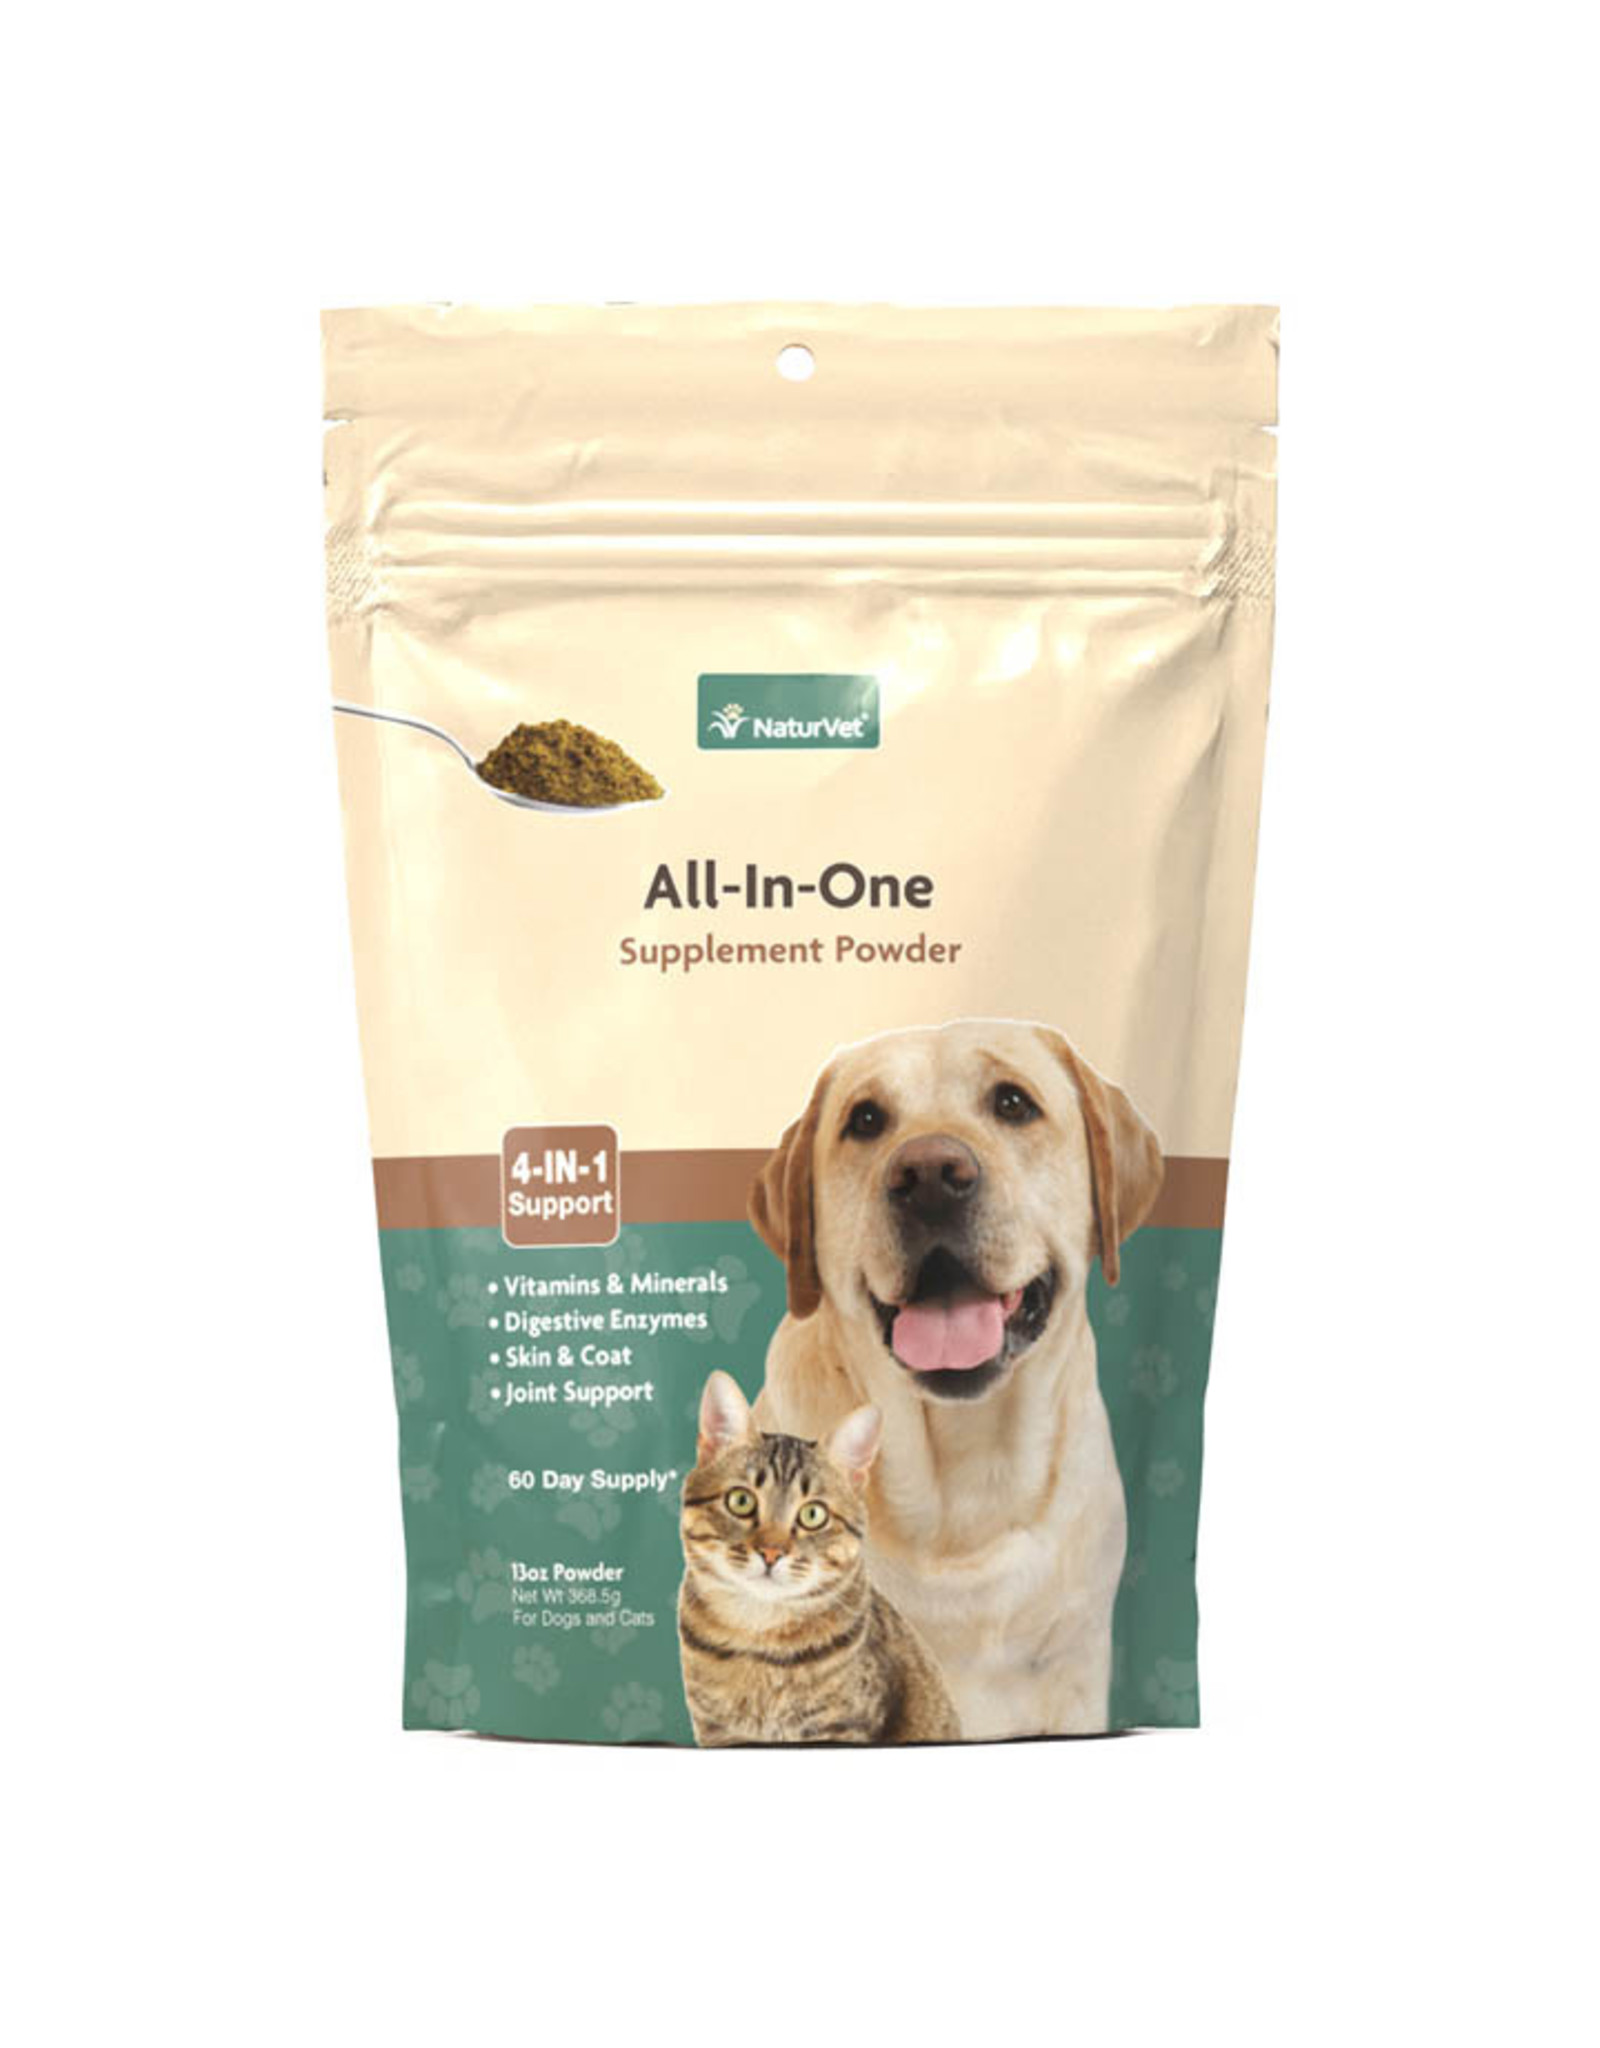 naturVet NaturVet All In One Supplement Powder for Cats and Dogs 13oz